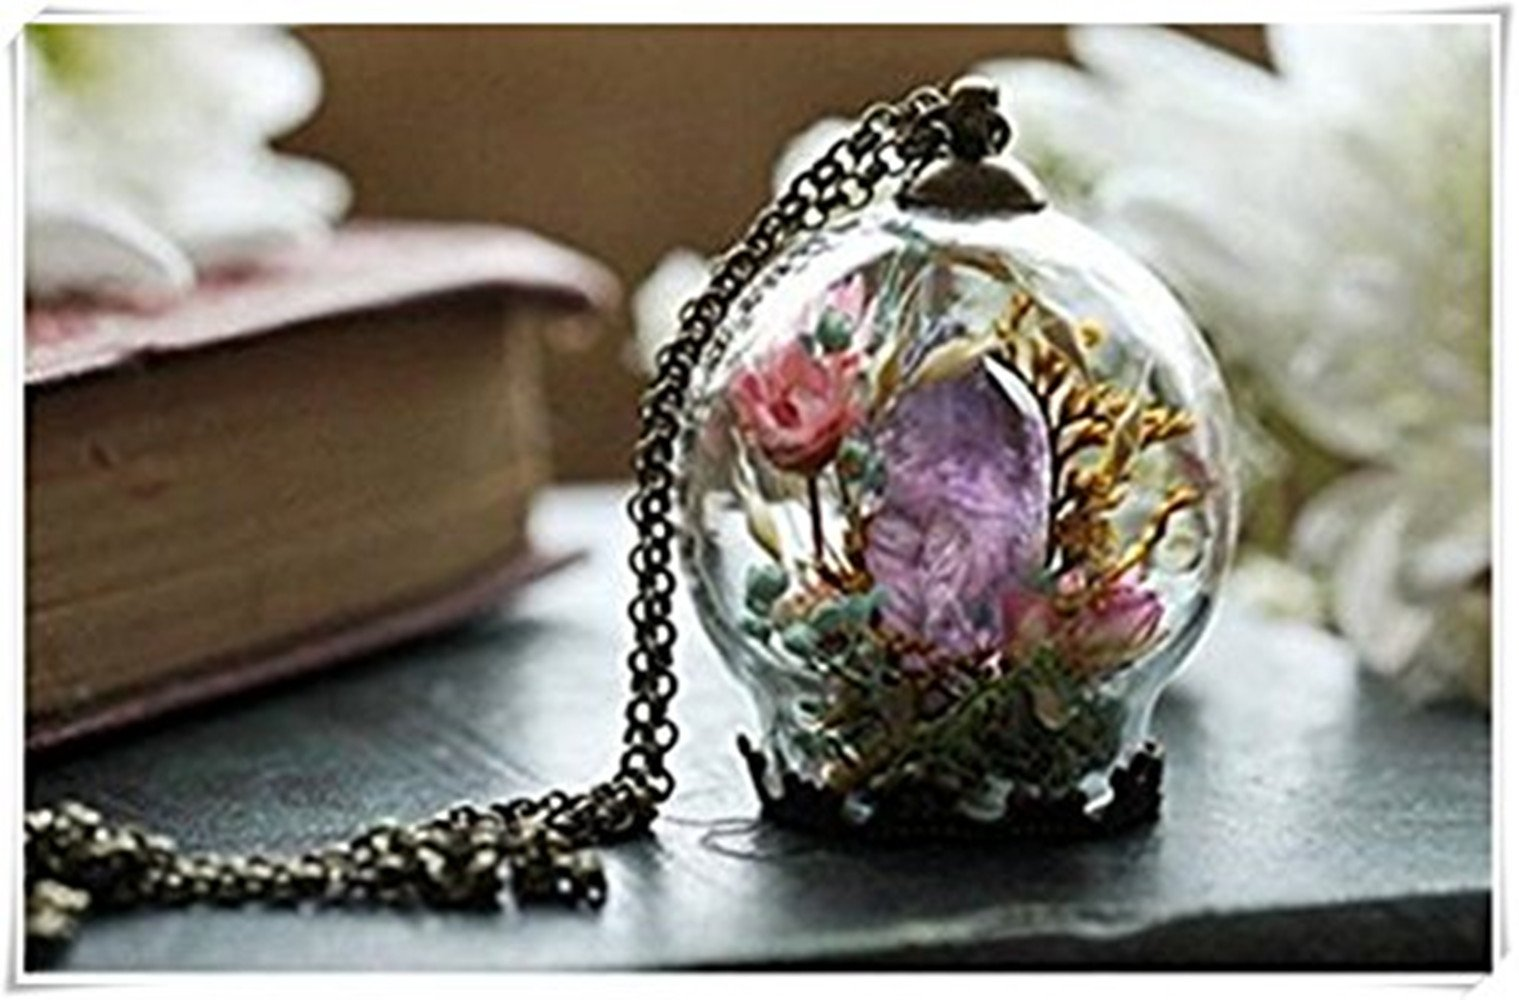 One Life One Jewerly Amethyst Crystal Necklace Crystal Terrarium Necklace Quartz Point Raw Amethyst Purple Amethyst Green Moss Terrarium Gifts For Her Buy Online In Faroe Islands At Faroe Desertcart Com Productid 69338048